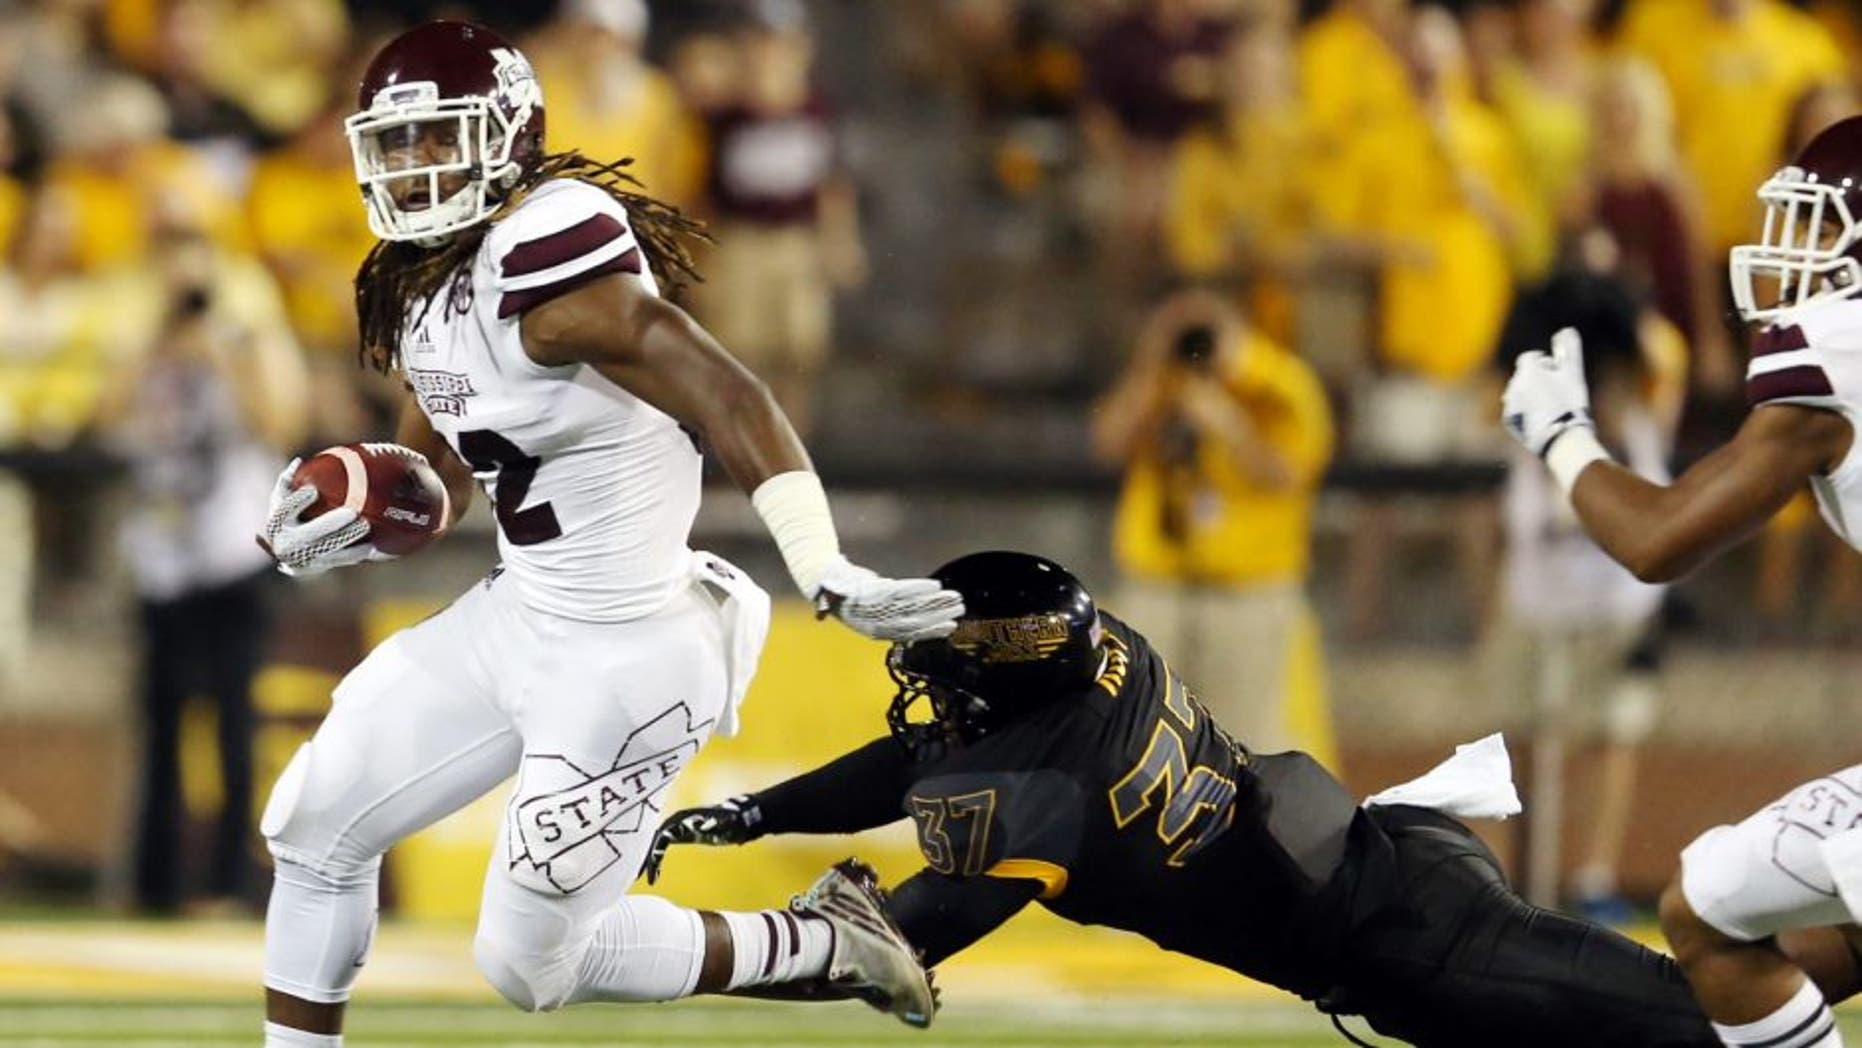 Sep 5, 2015; Hattiesburg, MS, USA; Mississippi State Bulldogs running back Ashton Shumpert (32) runs away from Southern Miss Golden Eagles linebacker Sherrod Ruff (37) in the first quarter of their game at M.M. Roberts Stadium. Mandatory Credit: Chuck Cook-USA TODAY Sports